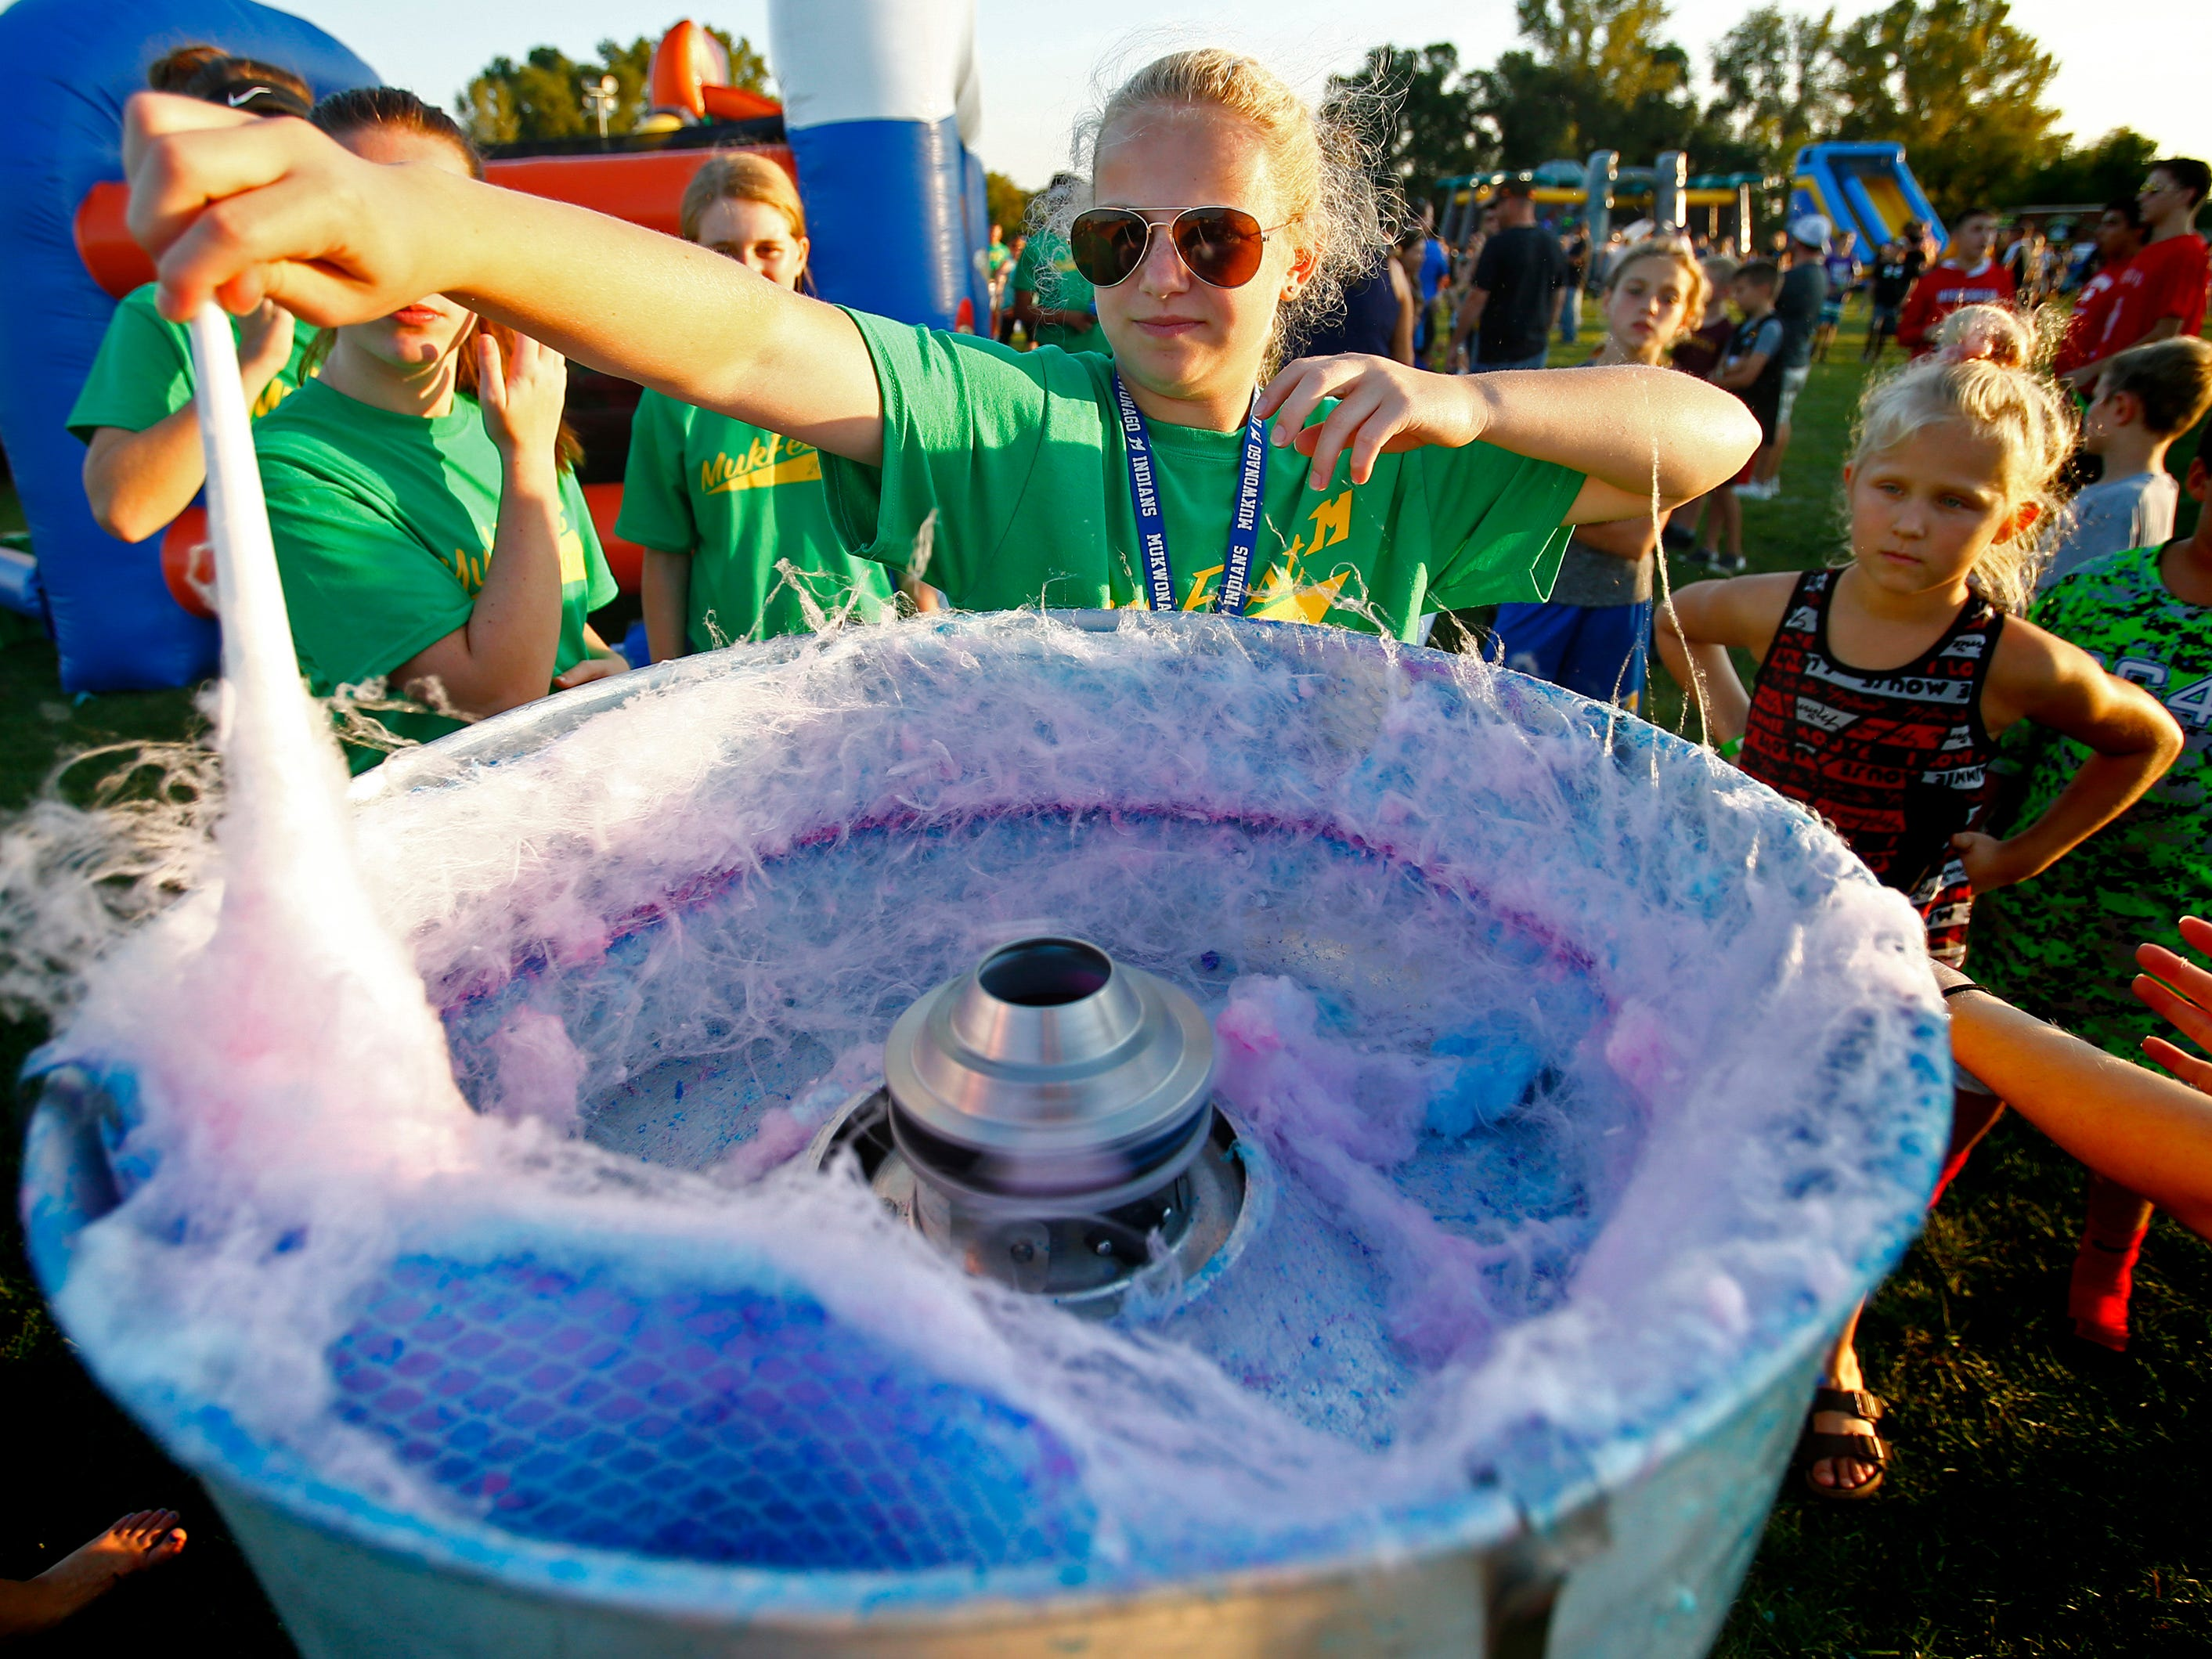 Kelly Muehlenkamp whirls up a cotton candy for a waiting child during Mukfest, presented by the Friends of Mukwonago Athletics, at Mukwonago High School on Sept. 14.